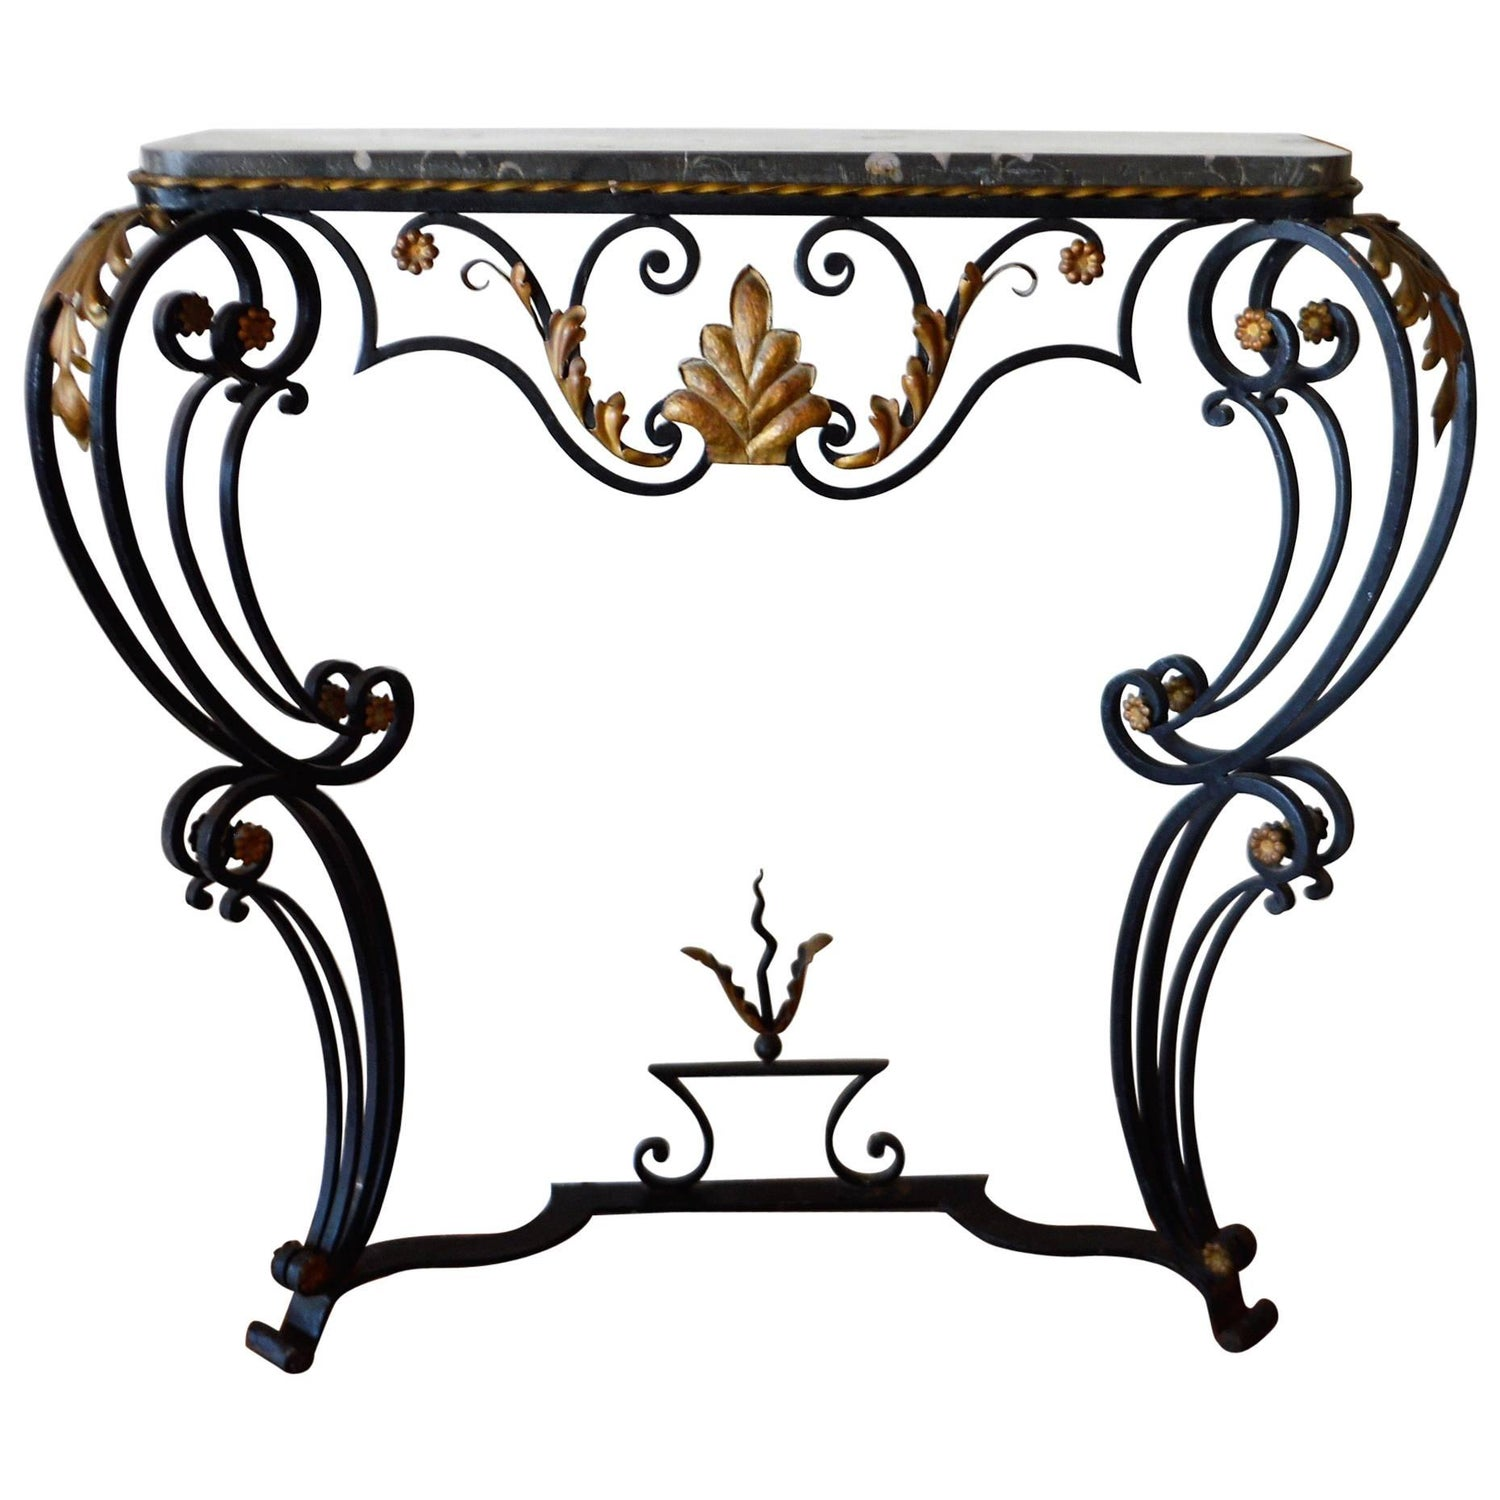 Louis xv style wrought iron console table with marble top at 1stdibs louis xv style hand forged black wrought iron console with gilt and marble top geotapseo Choice Image